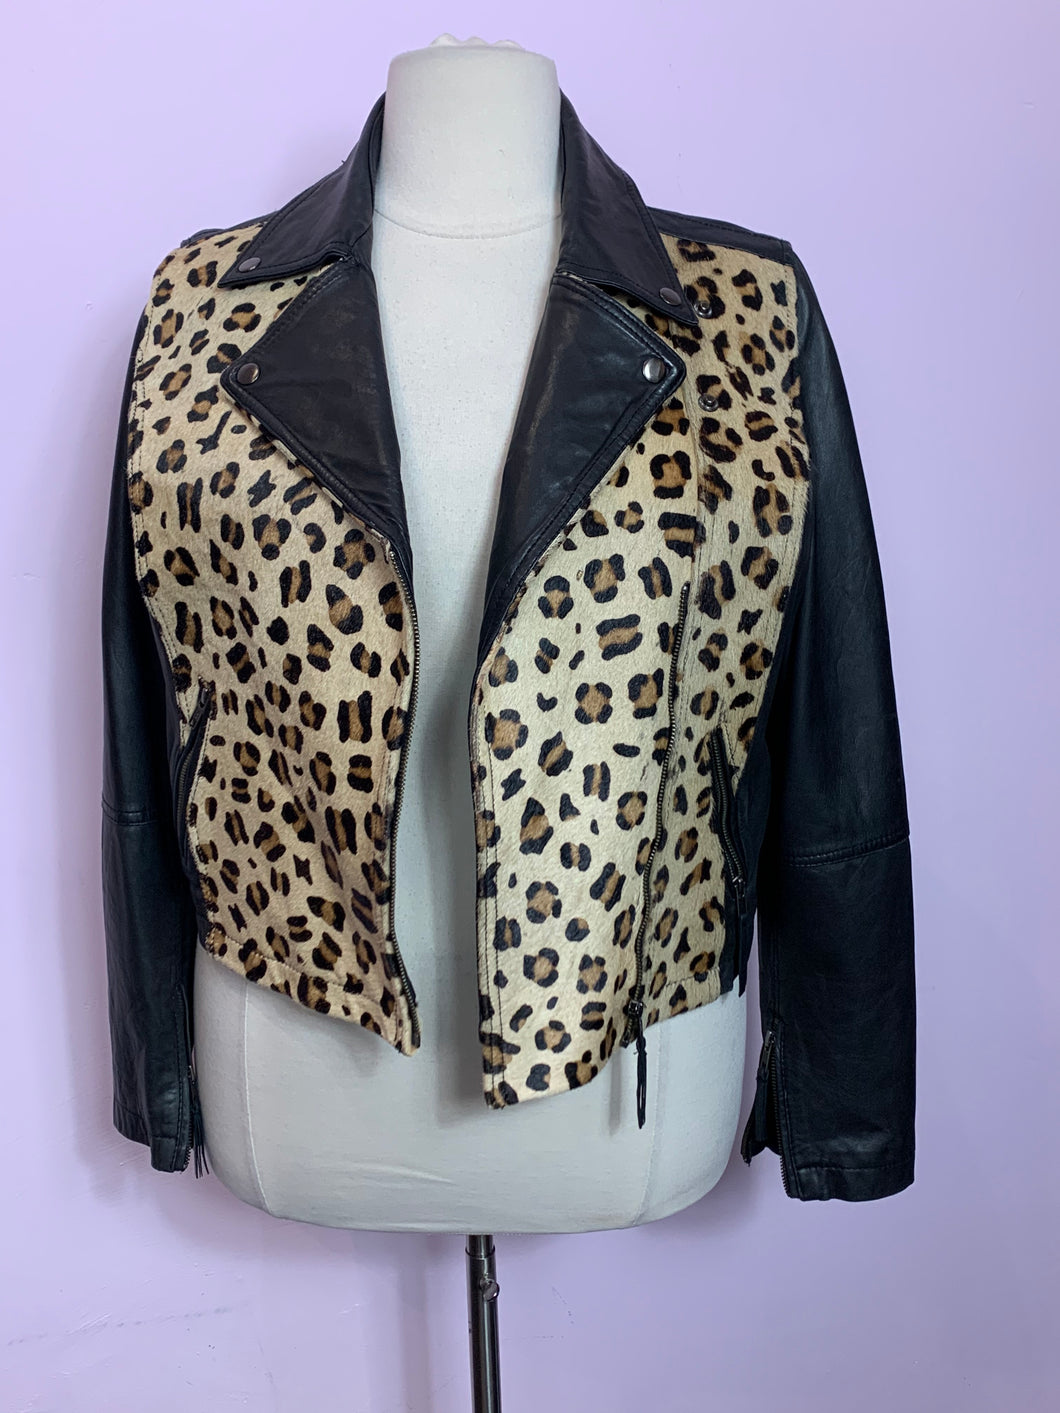 Leopard Print Cropped Leather Jacket, ASOS US 14